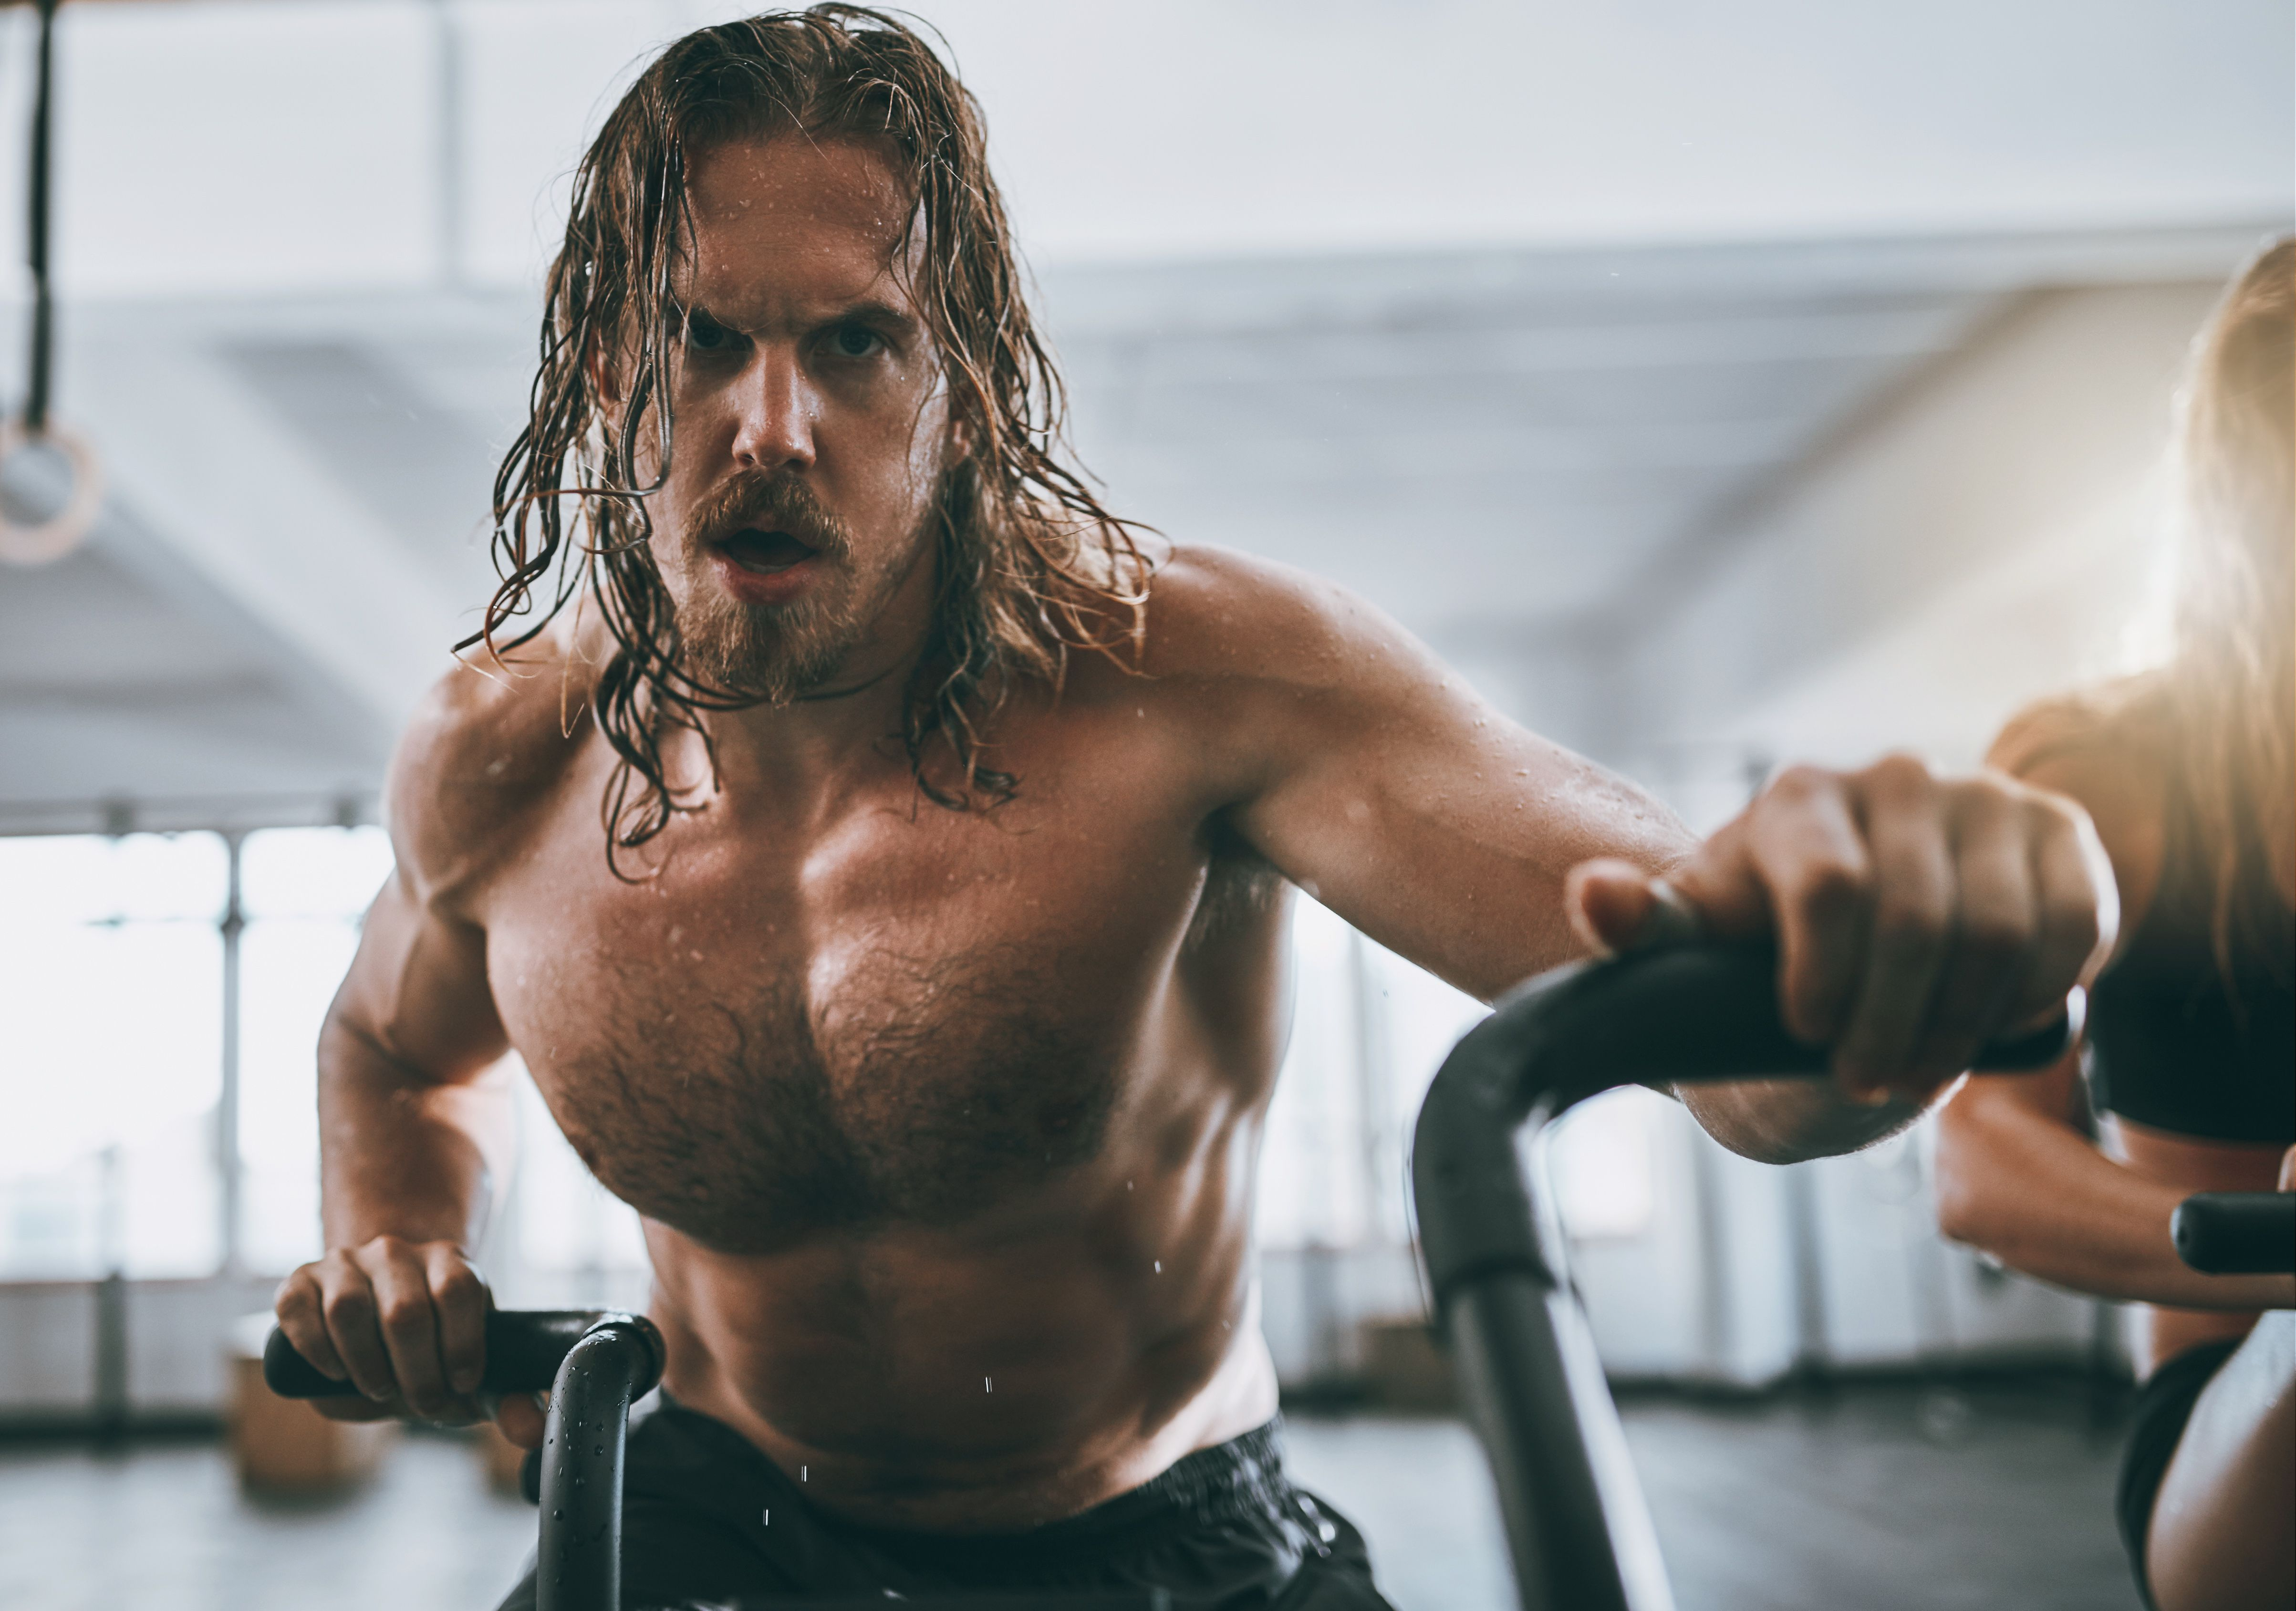 How to Use Cardio to Make Your Strength Training Better